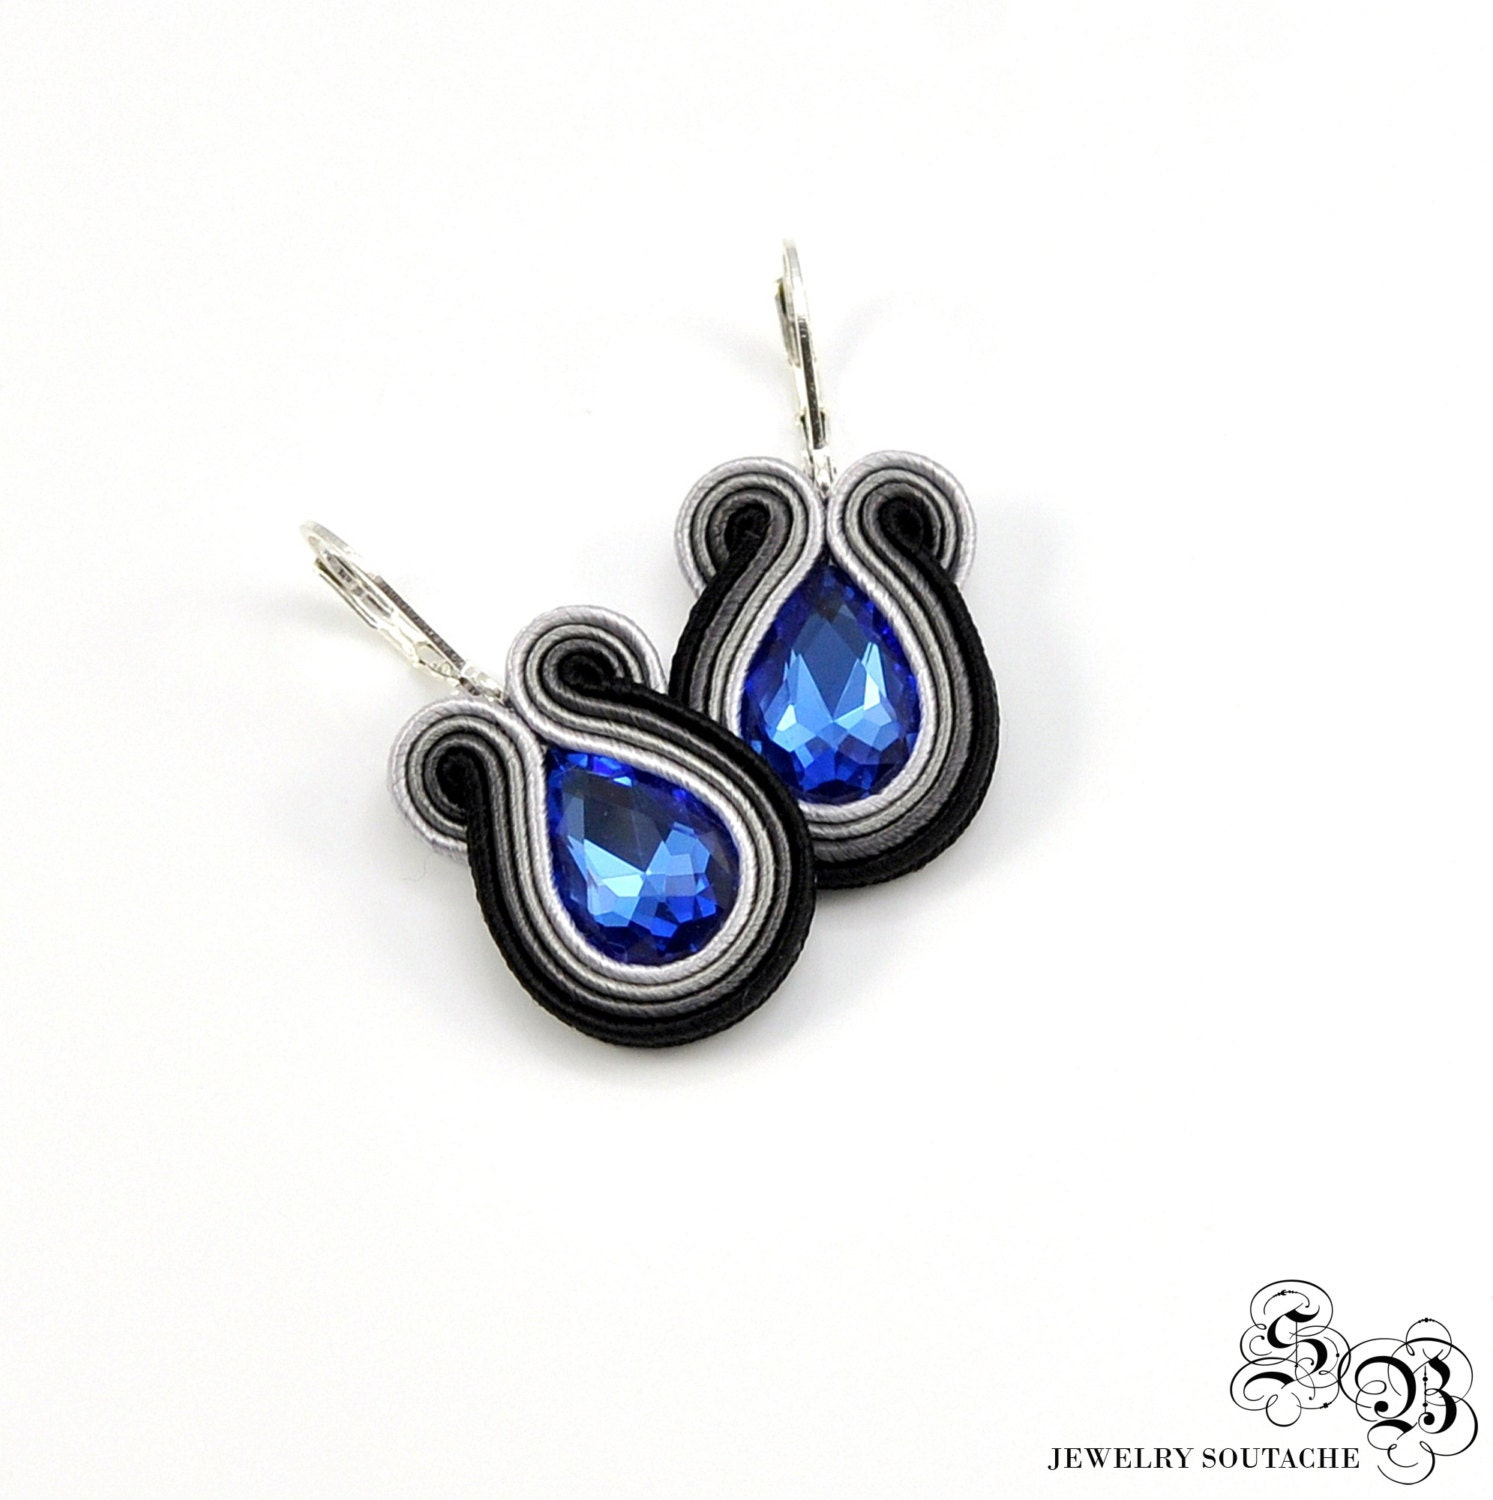 Small Blue Earrings: Small Black Gray Blue Soutache Earrings By SBjewelrySoutache